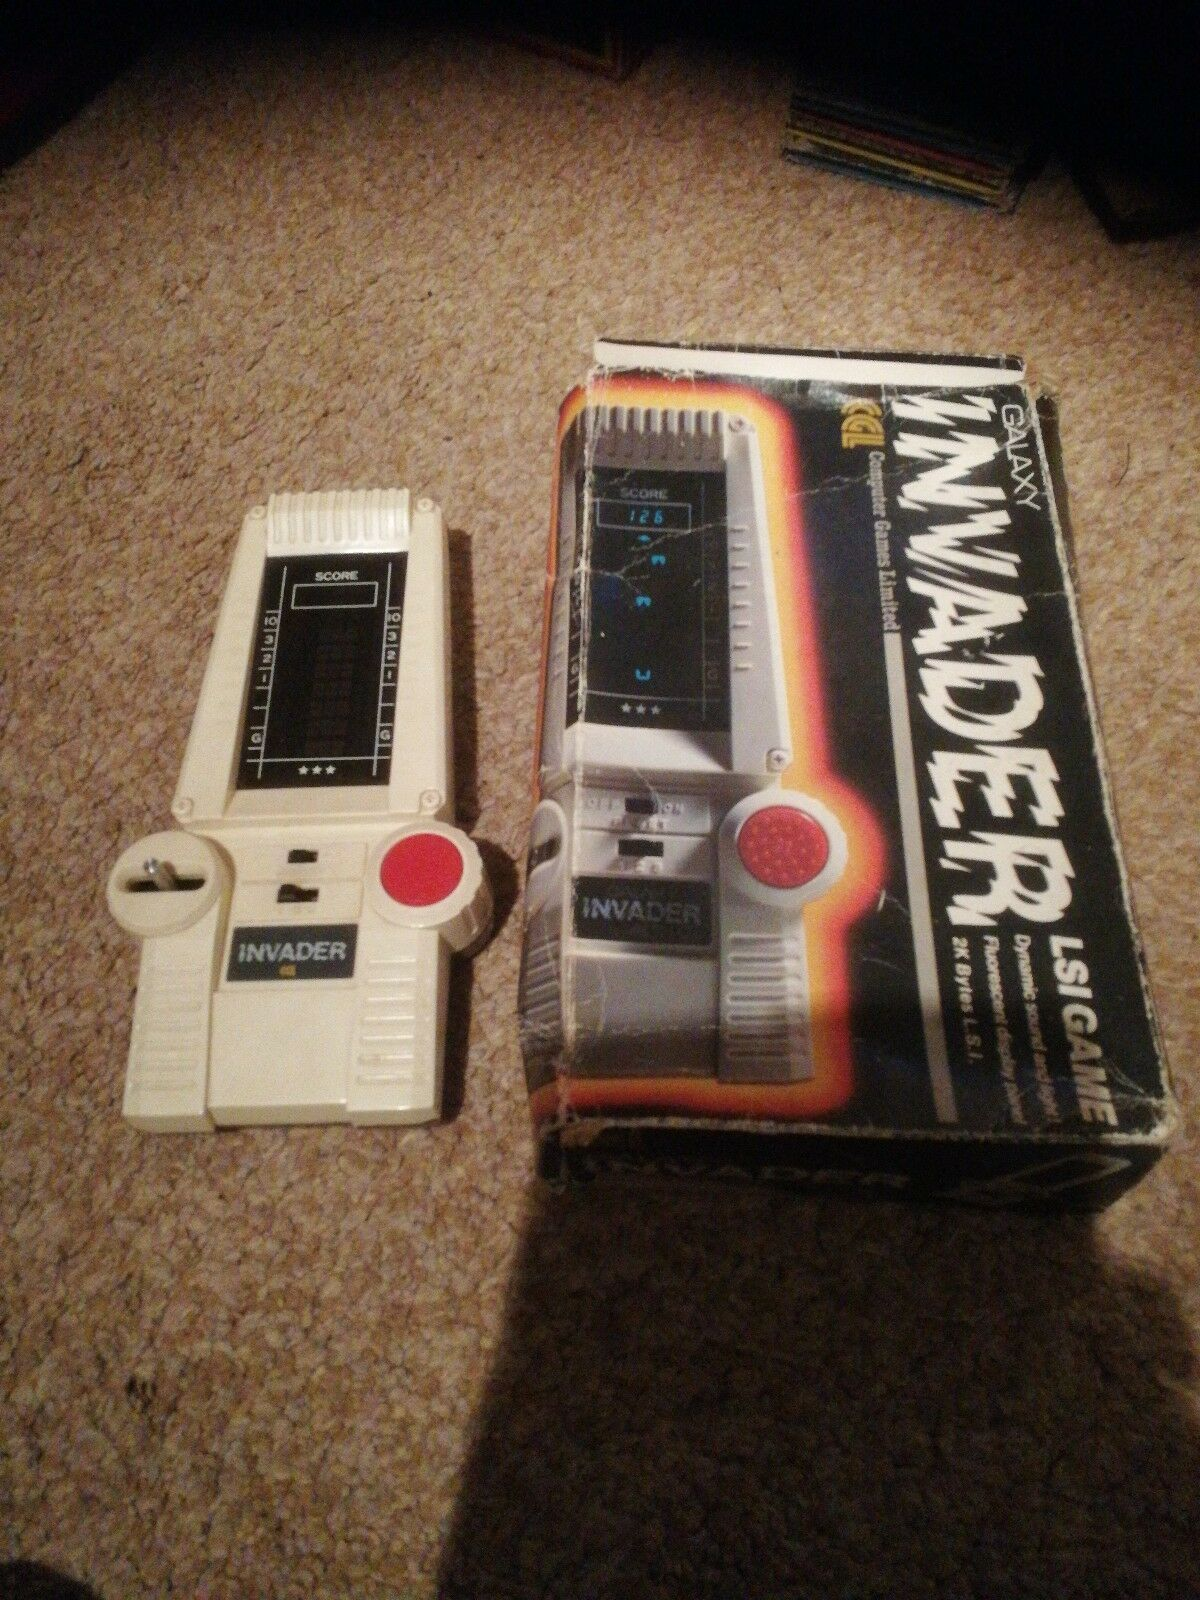 Galaxy invader lsi game very rare